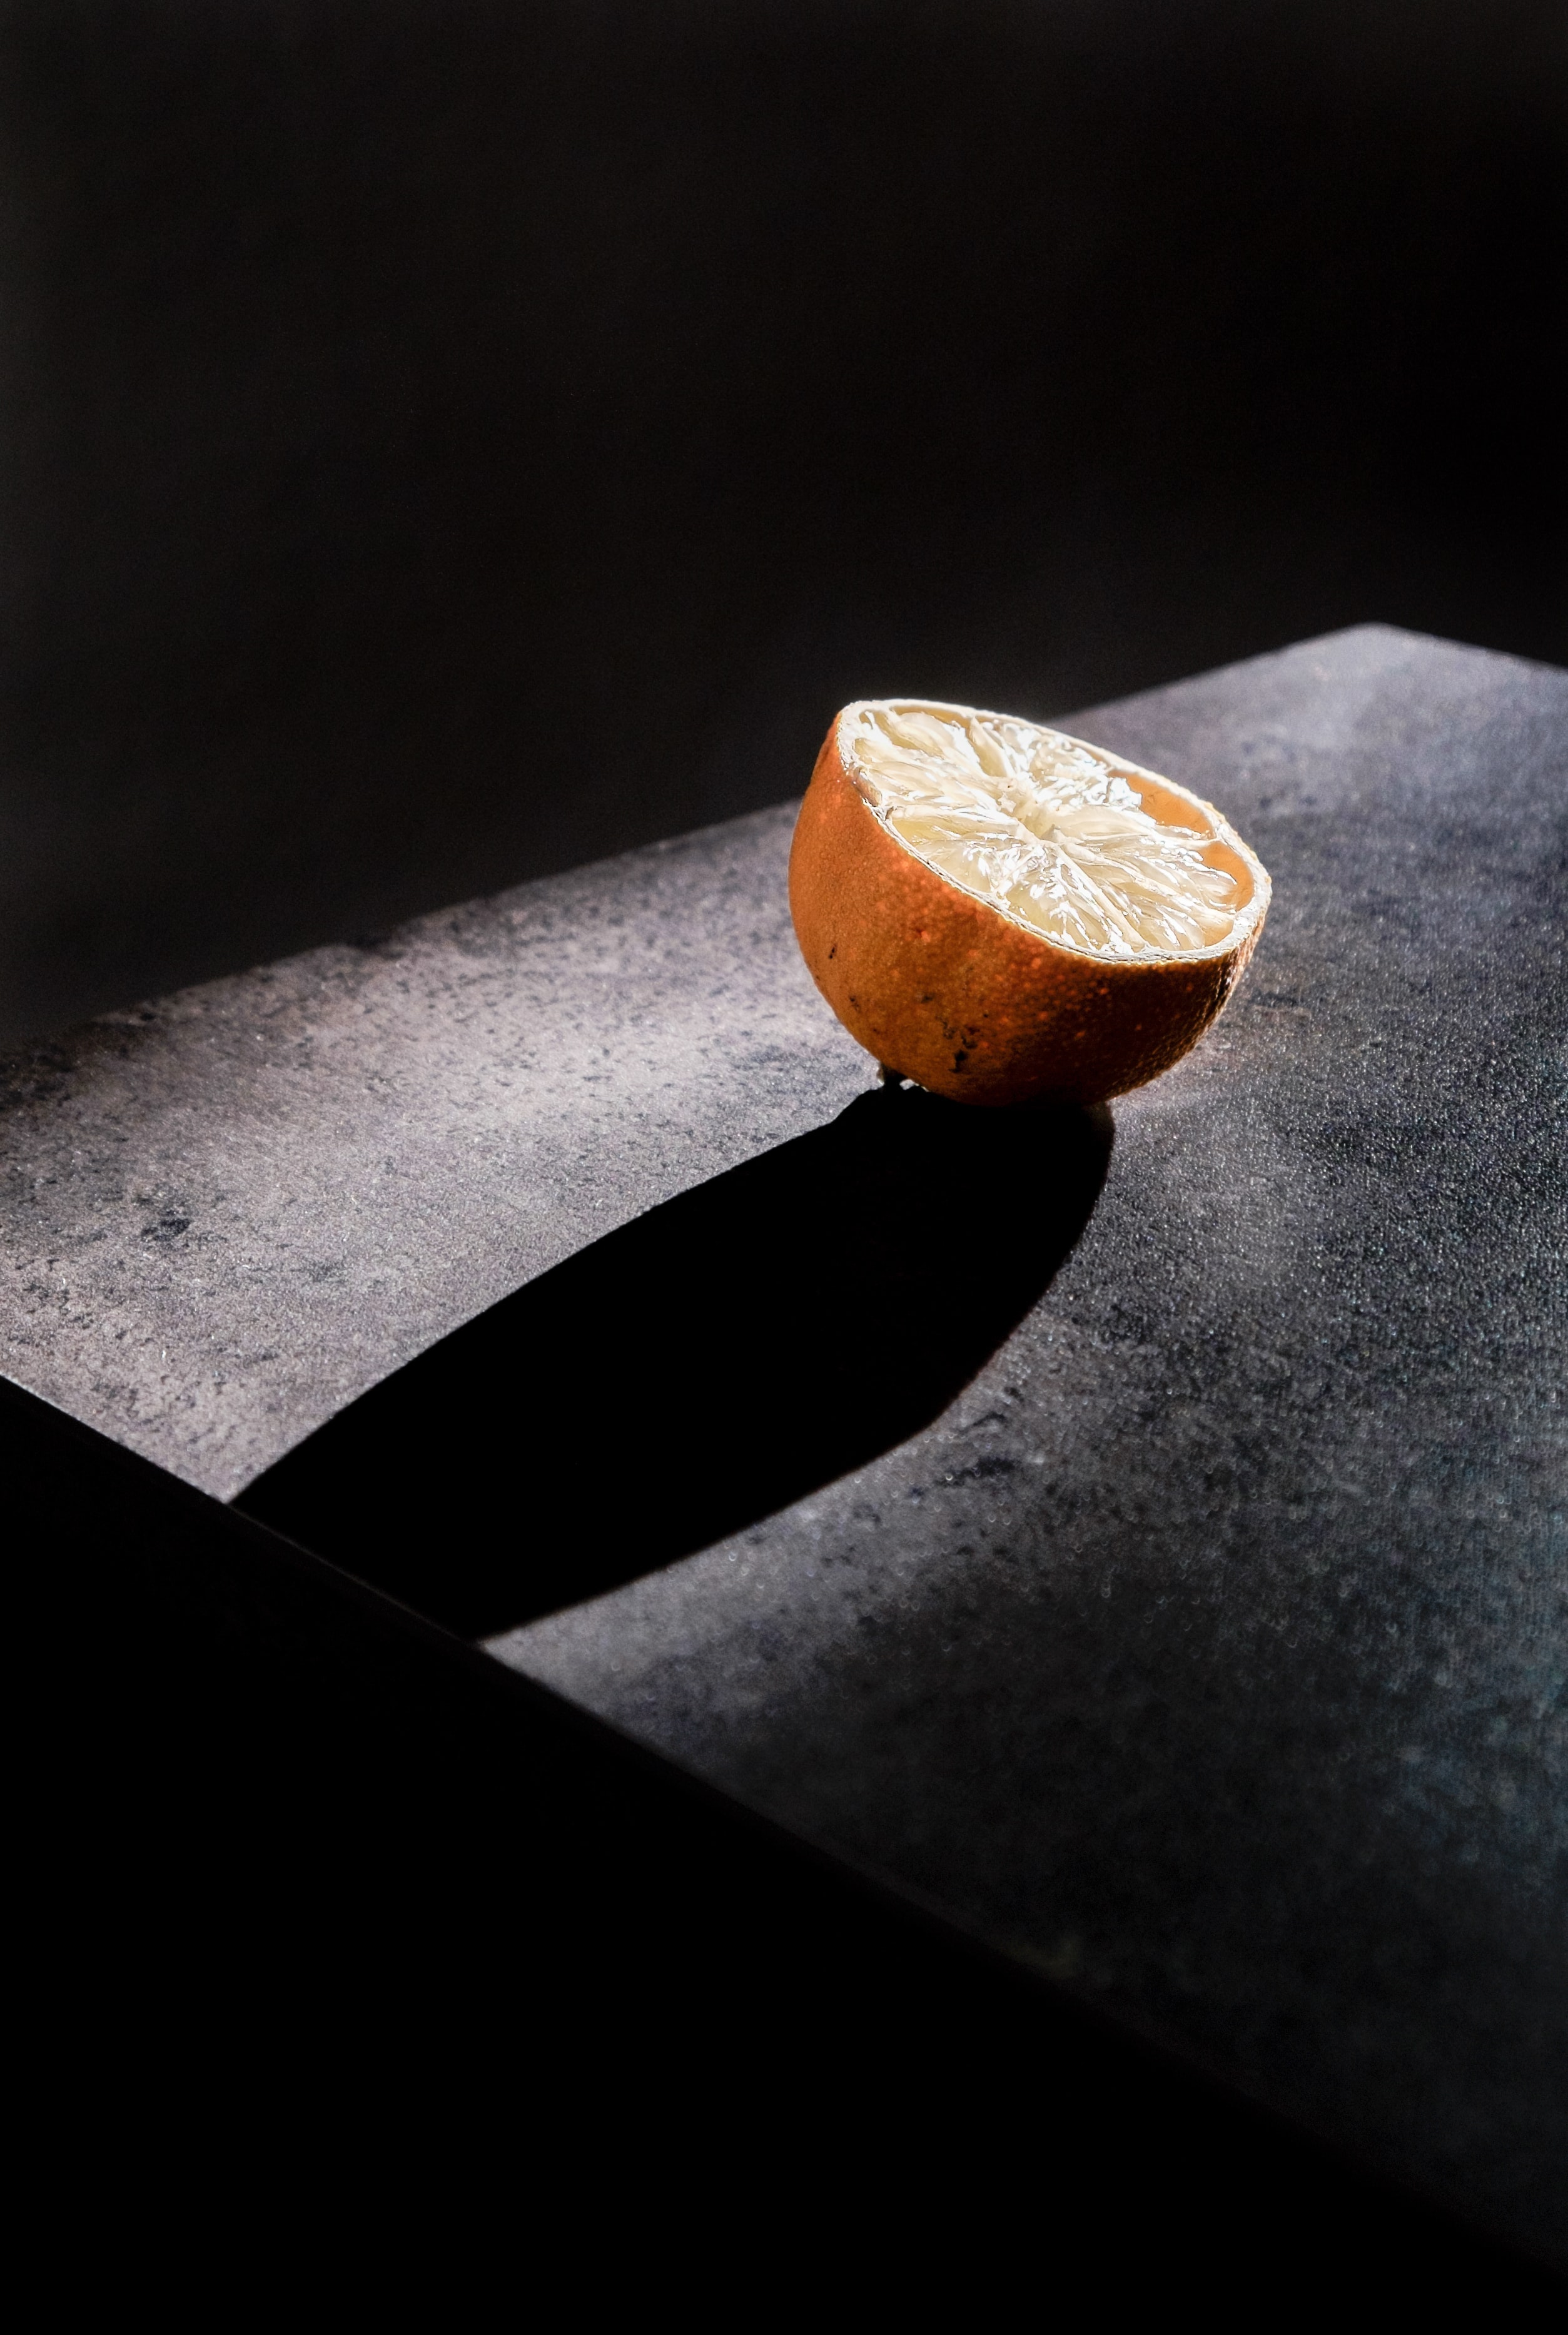 A half of a lemon casting a long shadow on a black surface